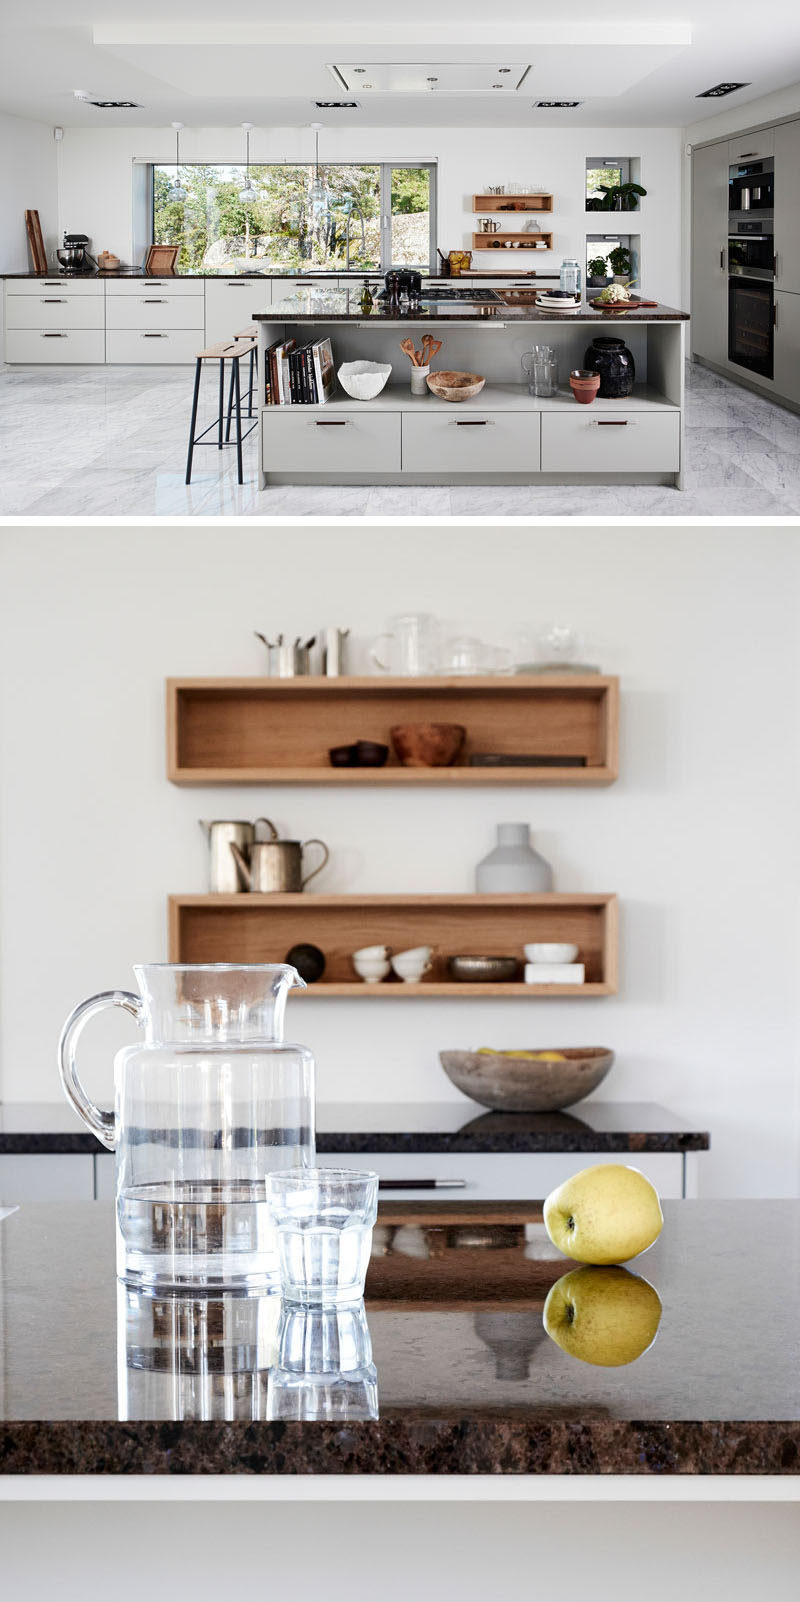 5 Reasons Why You Should Use Natural Stone For Your Interior Spaces / In the kitchen, a natural stone countertop is a great food prep surface, and when combined with either light or dark kitchen cabinetry, it can stand out to create a luxurious look.